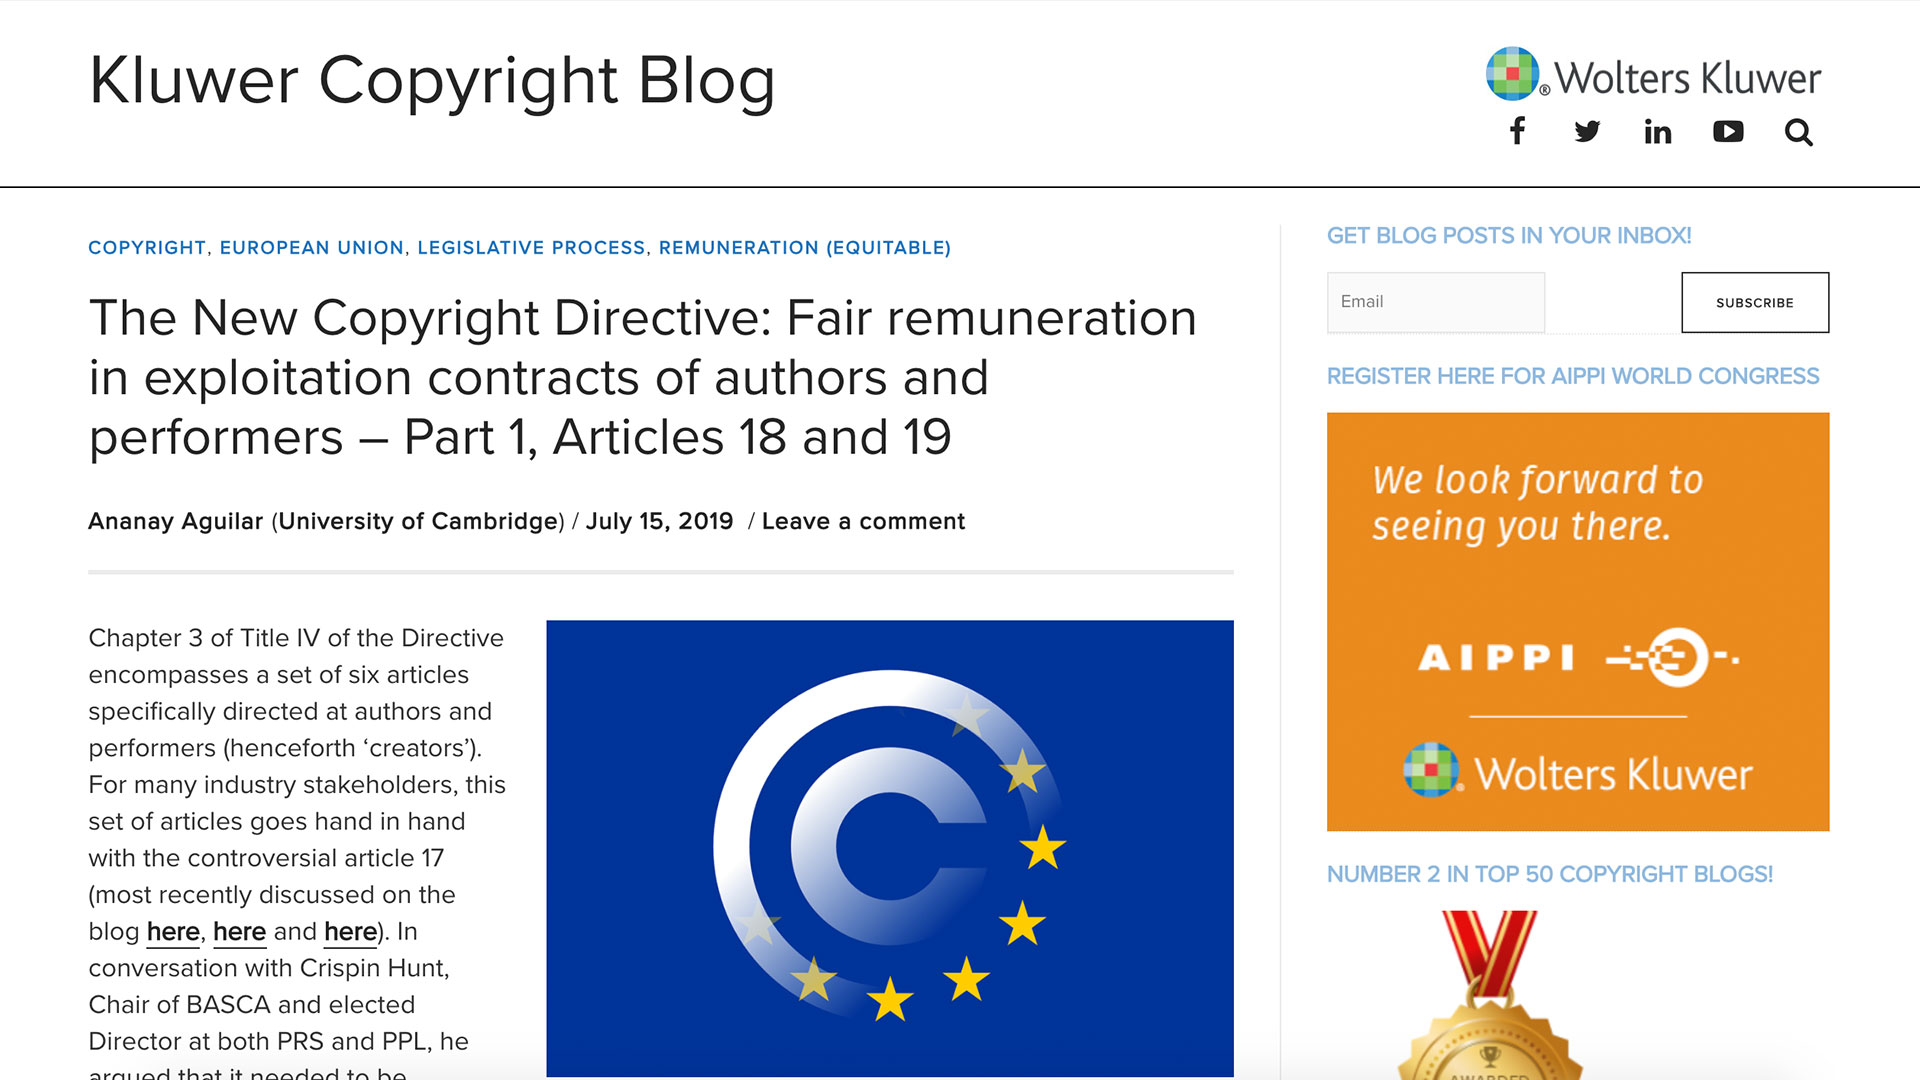 Fairness Rocks News The New Copyright Directive: Fair remuneration in exploitation contracts of authors and performers – Part 1, Articles 18 and 19